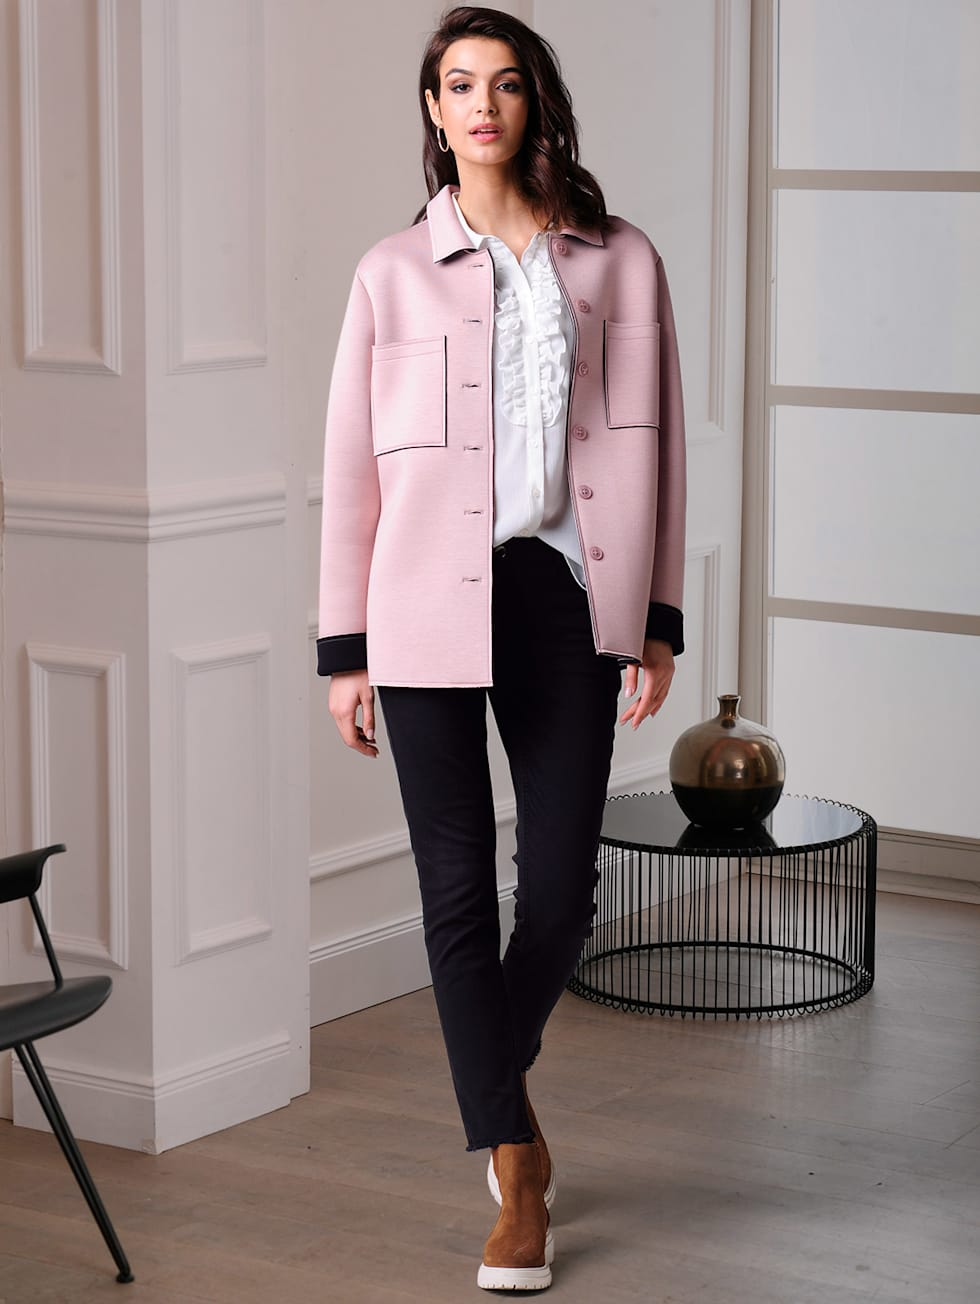 KW26_Outfit_Jacket-Styles